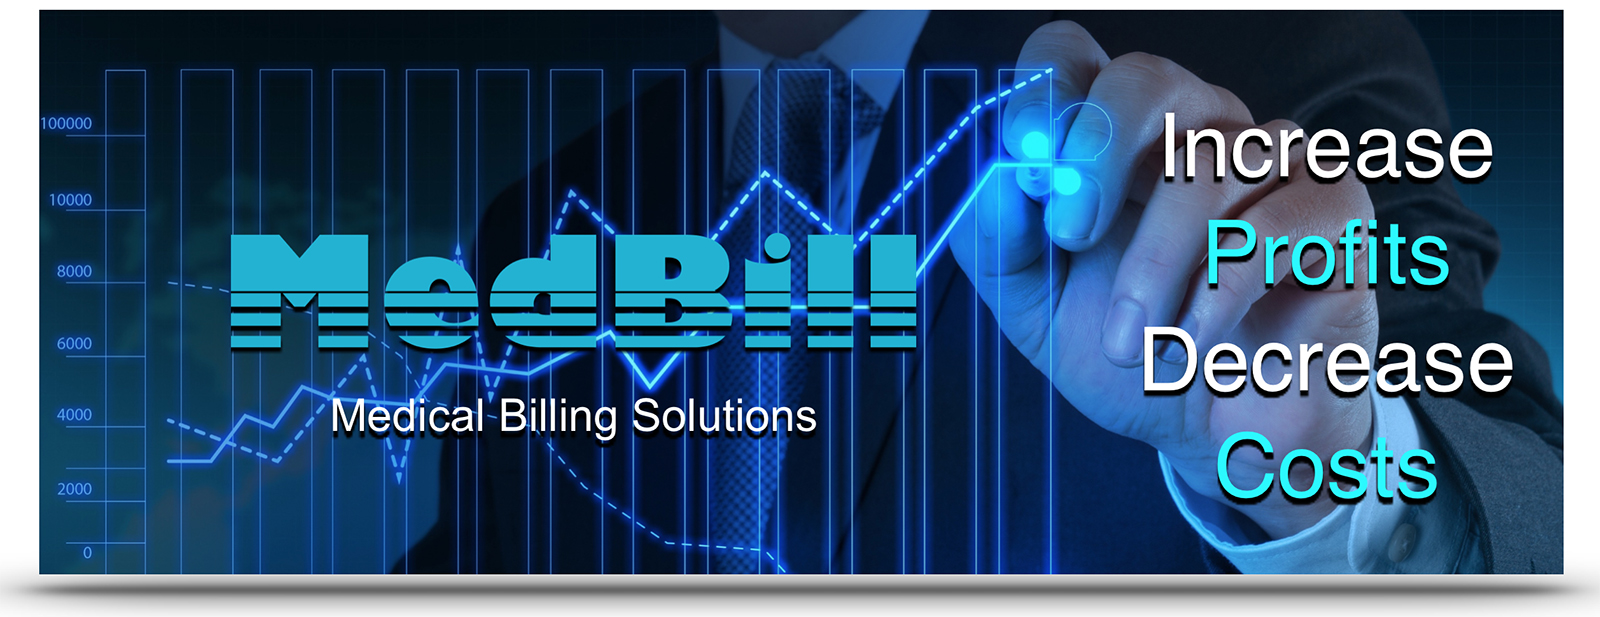 MedBill's medical billing services